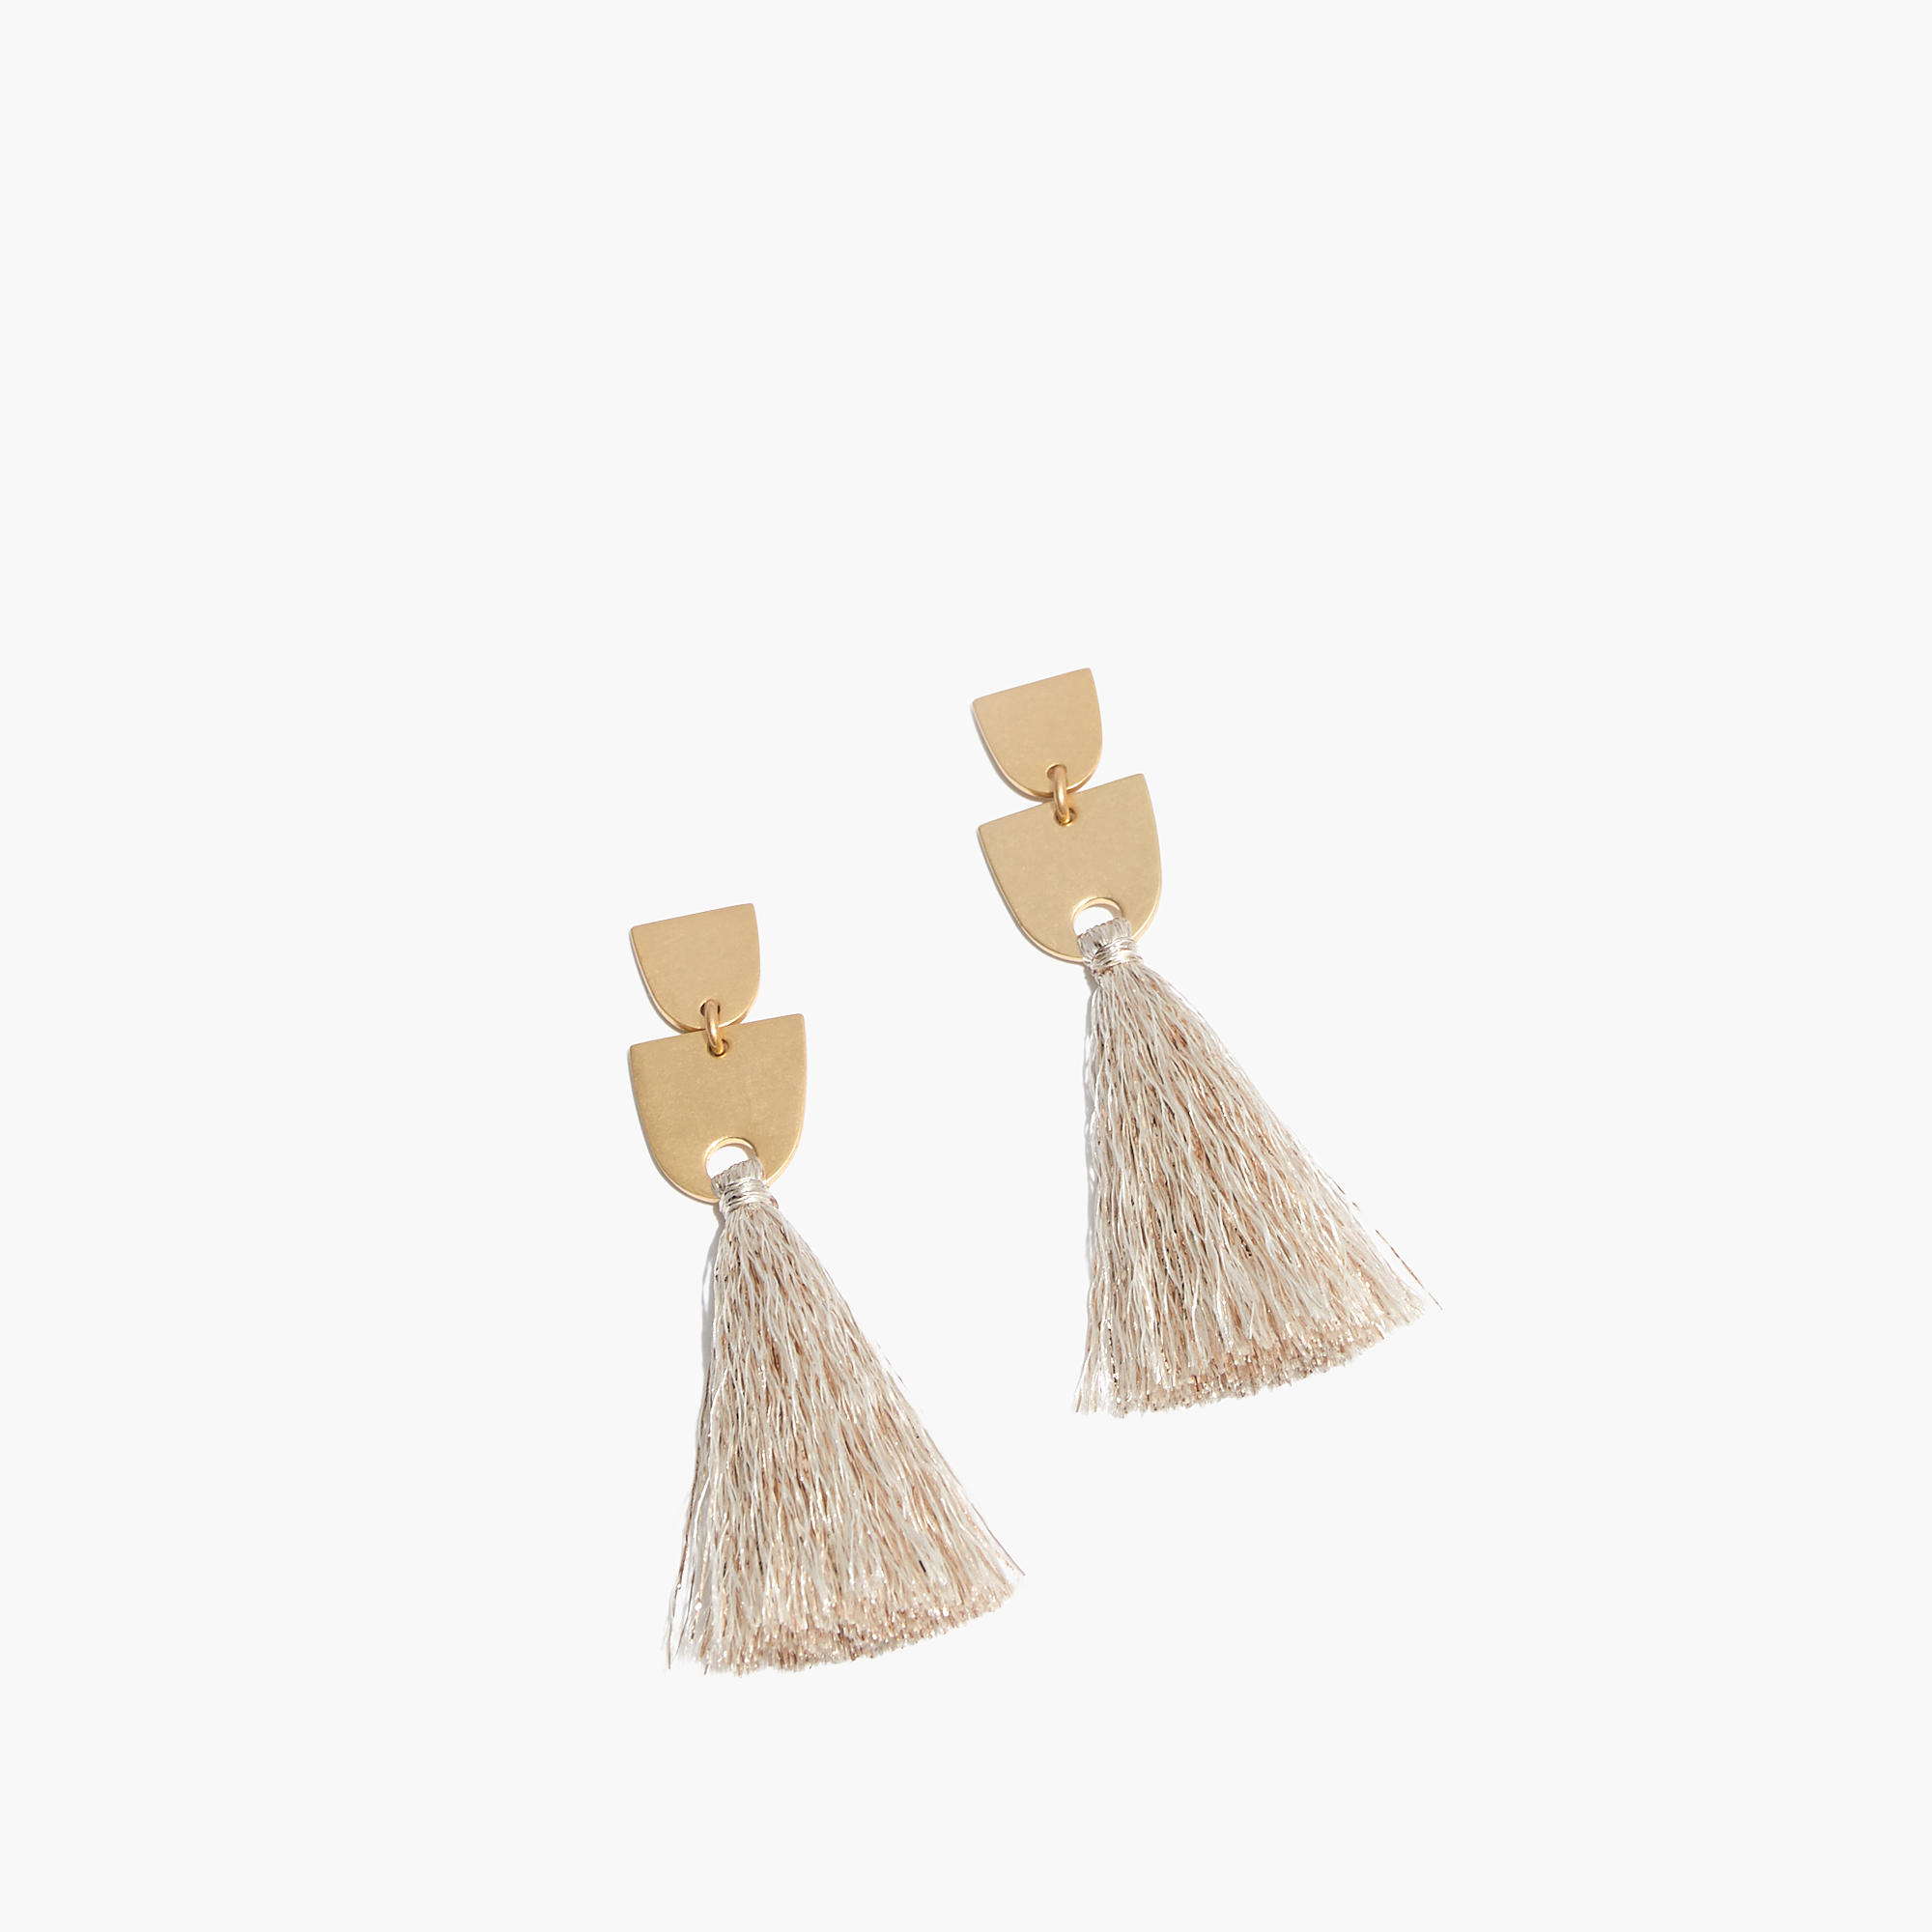 tassle enlarge shopmadewell women pdp tassel jewelry earrings p madewell